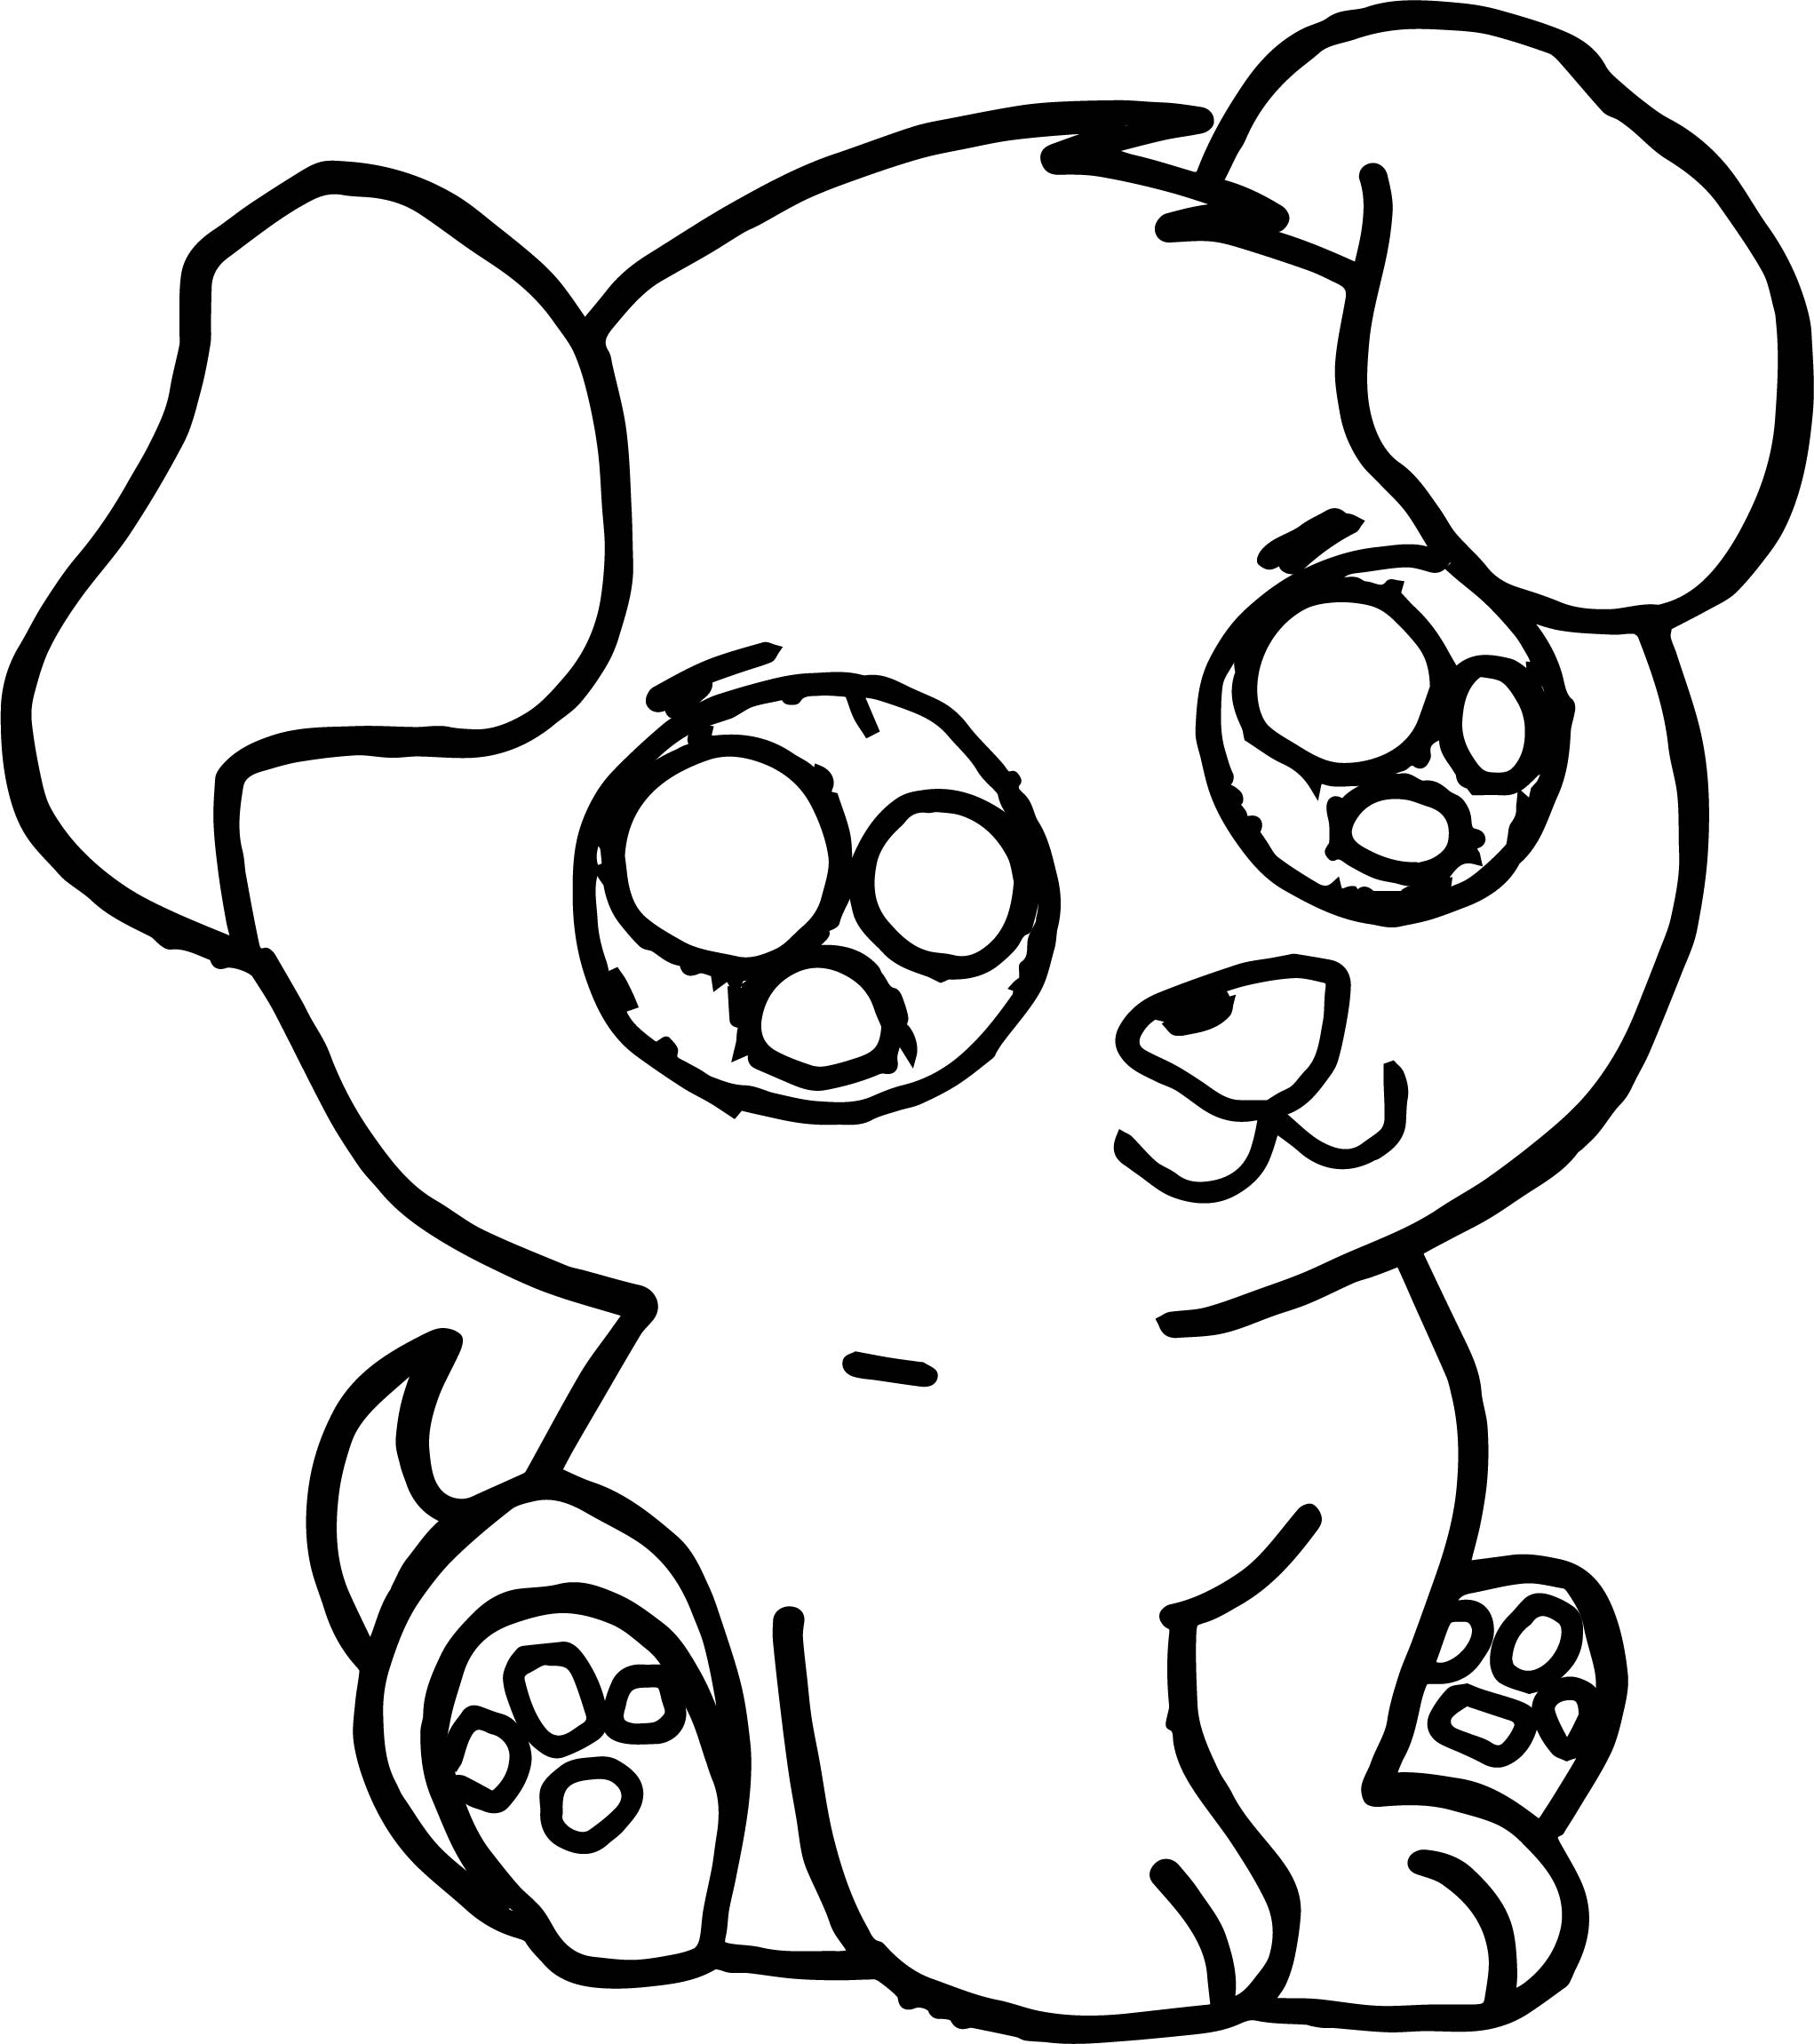 a coloring page of a dog pug coloring pages to download and print for free dog coloring a a of page